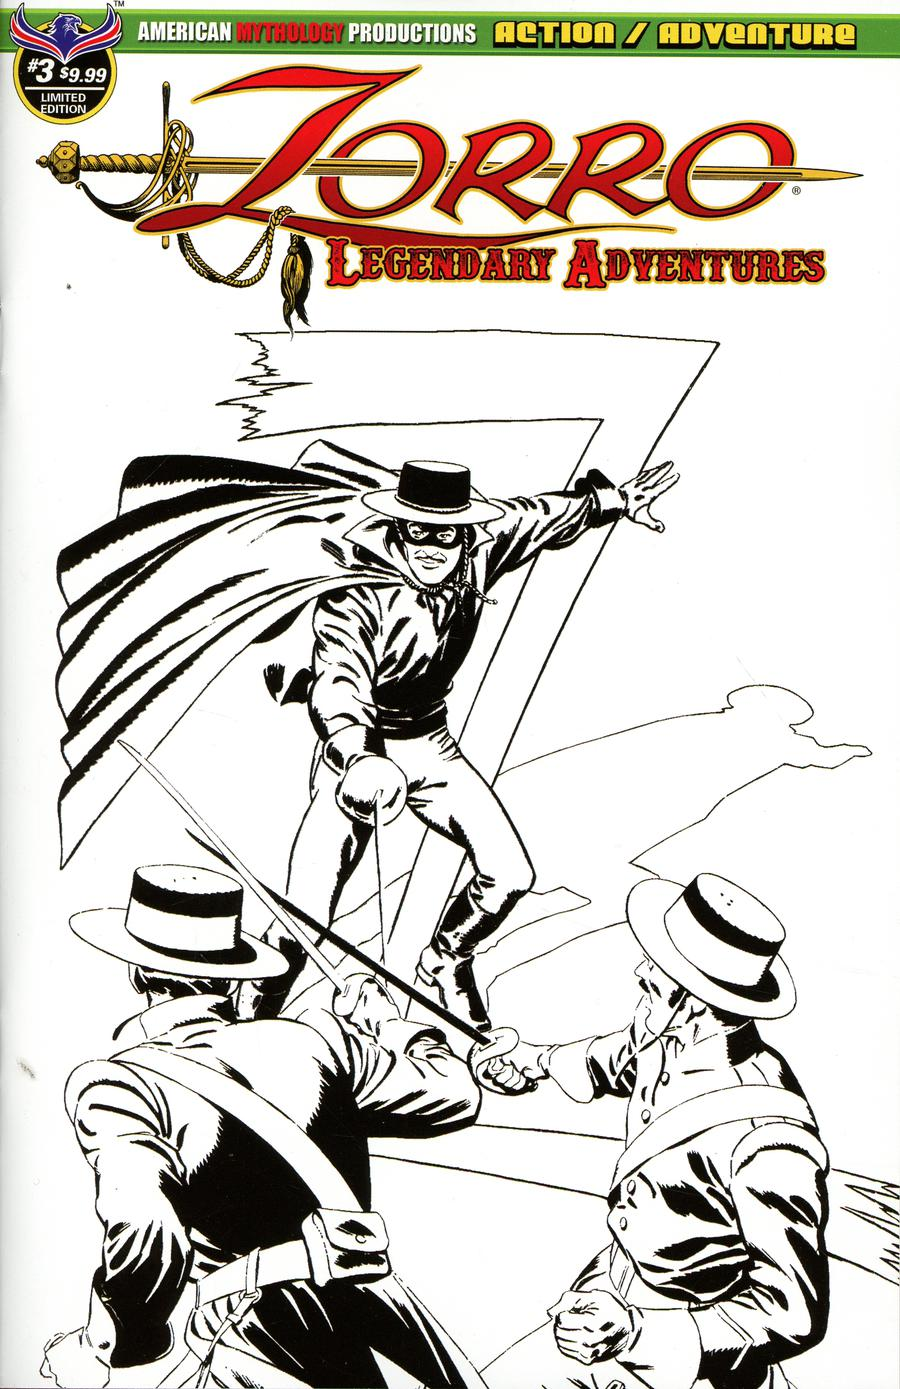 Zorro Legendary Adventures #3 Cover B Variant Francisco Cueto Blazing Blades Of Zorro Limited Edition Cover